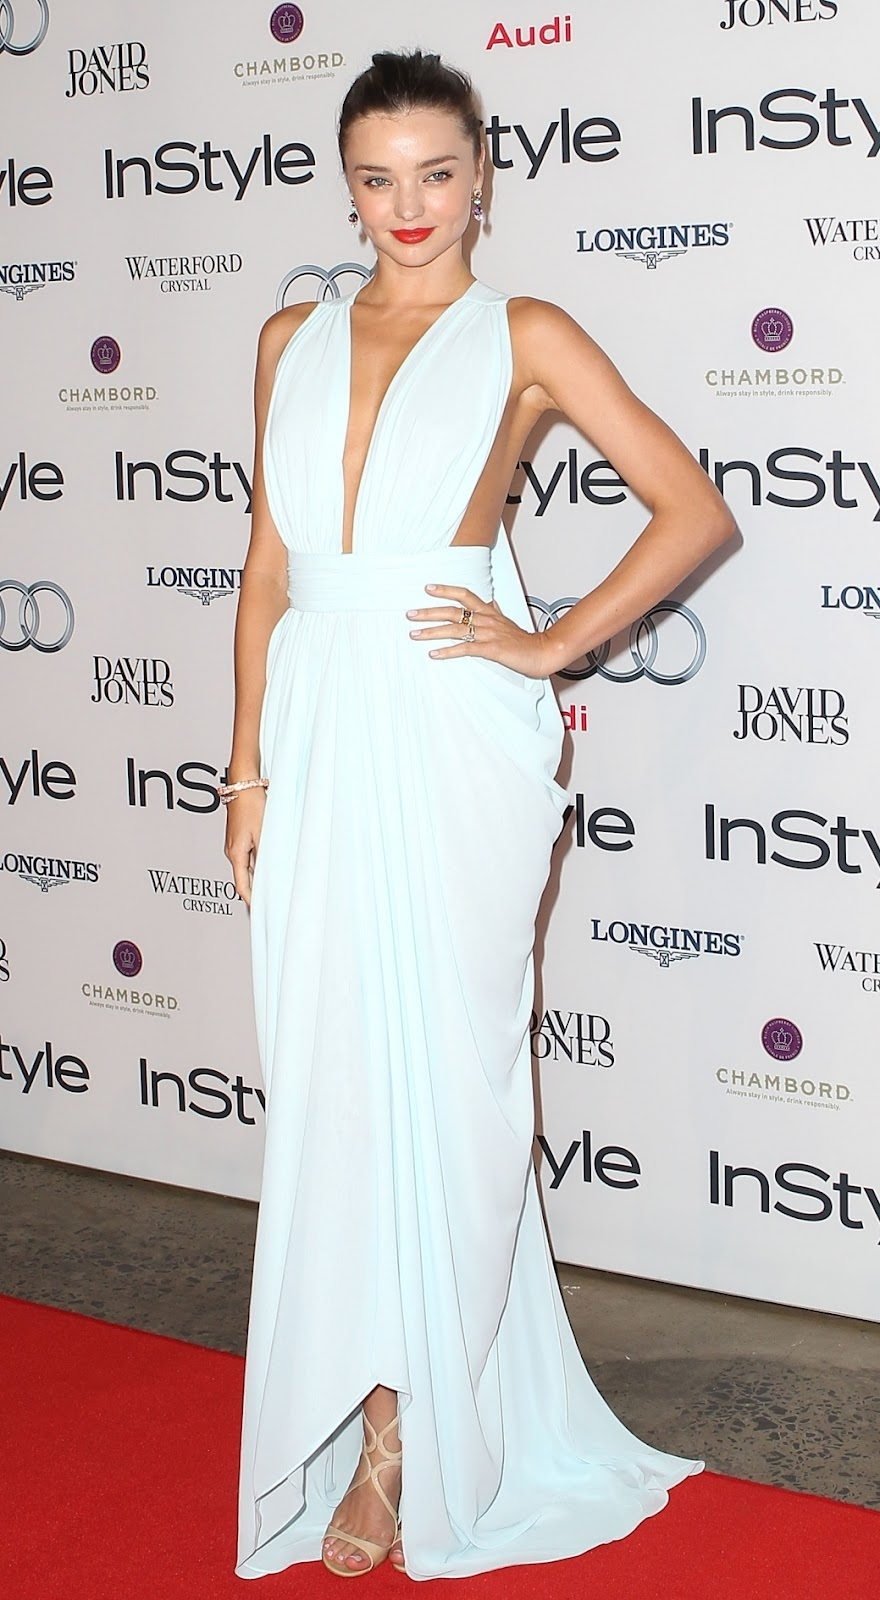 Miranda Kerr arrives at the 2012 Women Of Style Awards